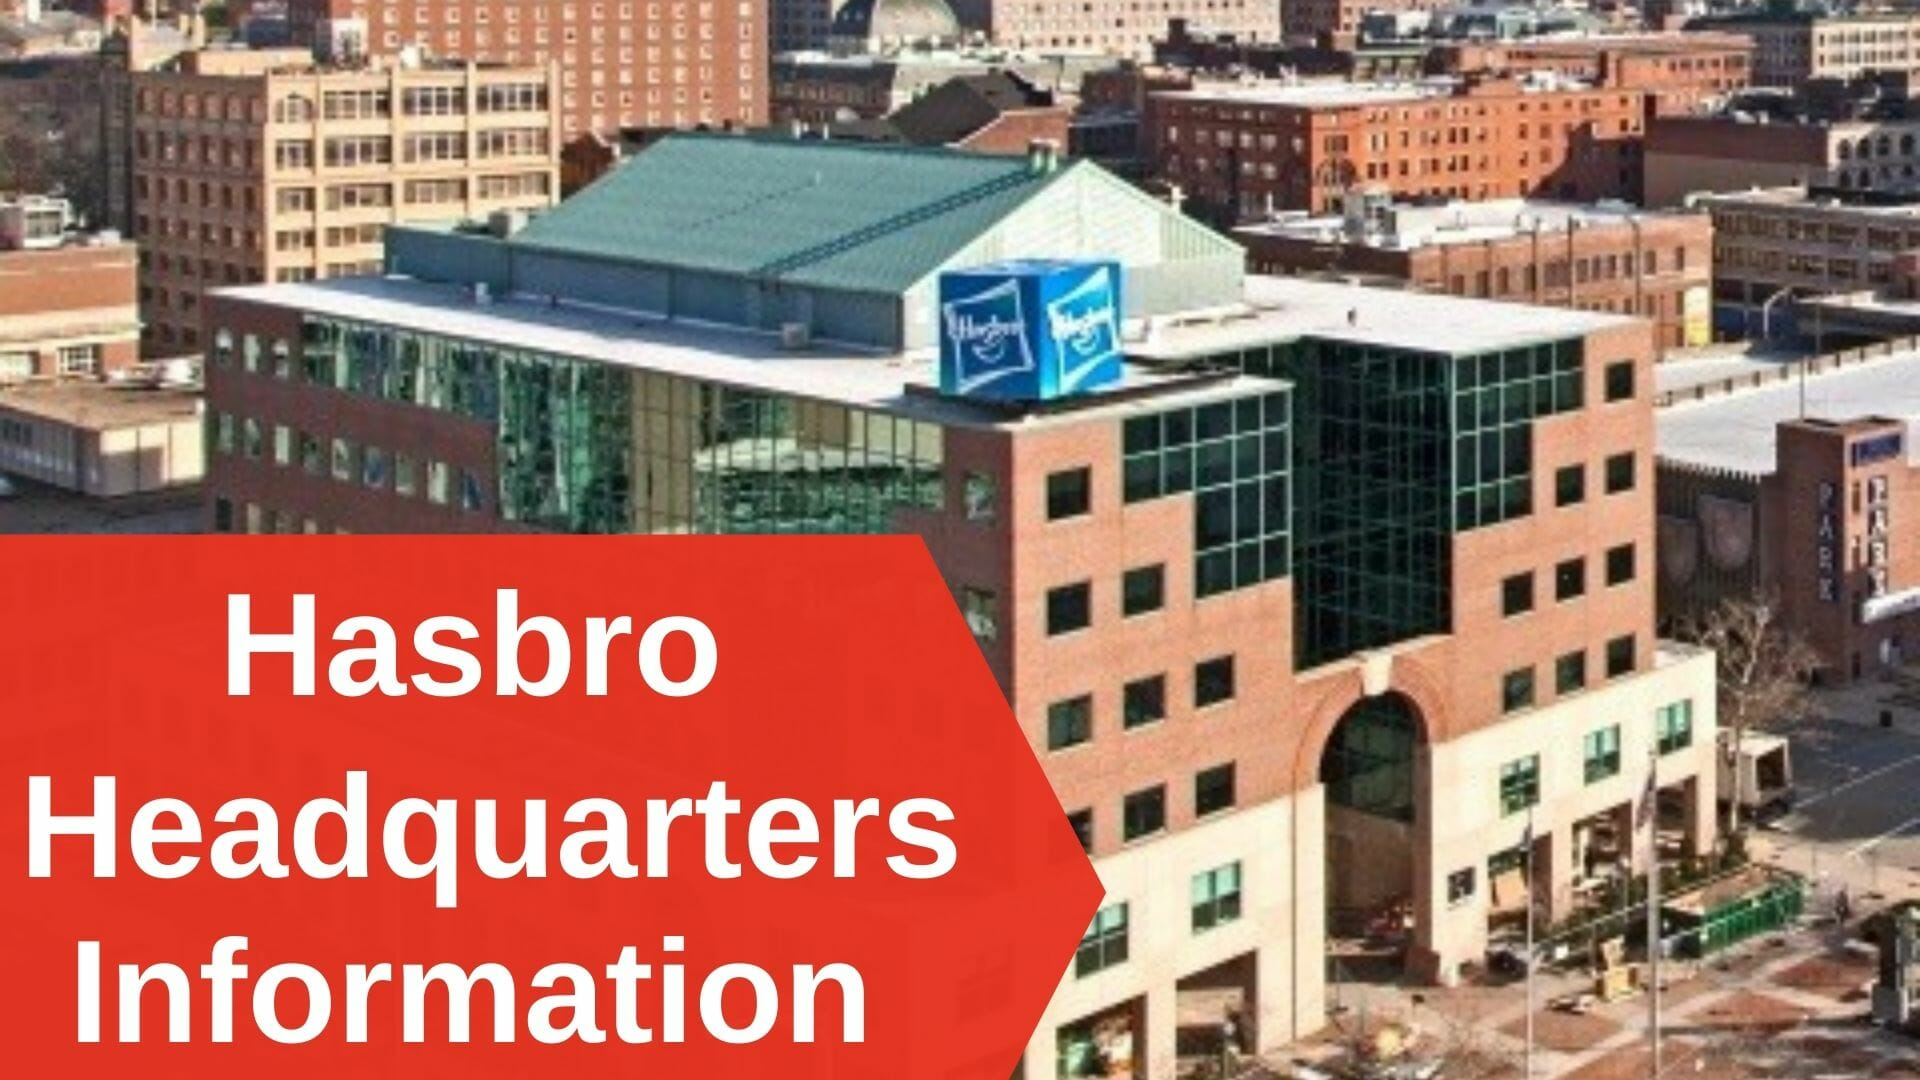 Hasbro Headquarters Information